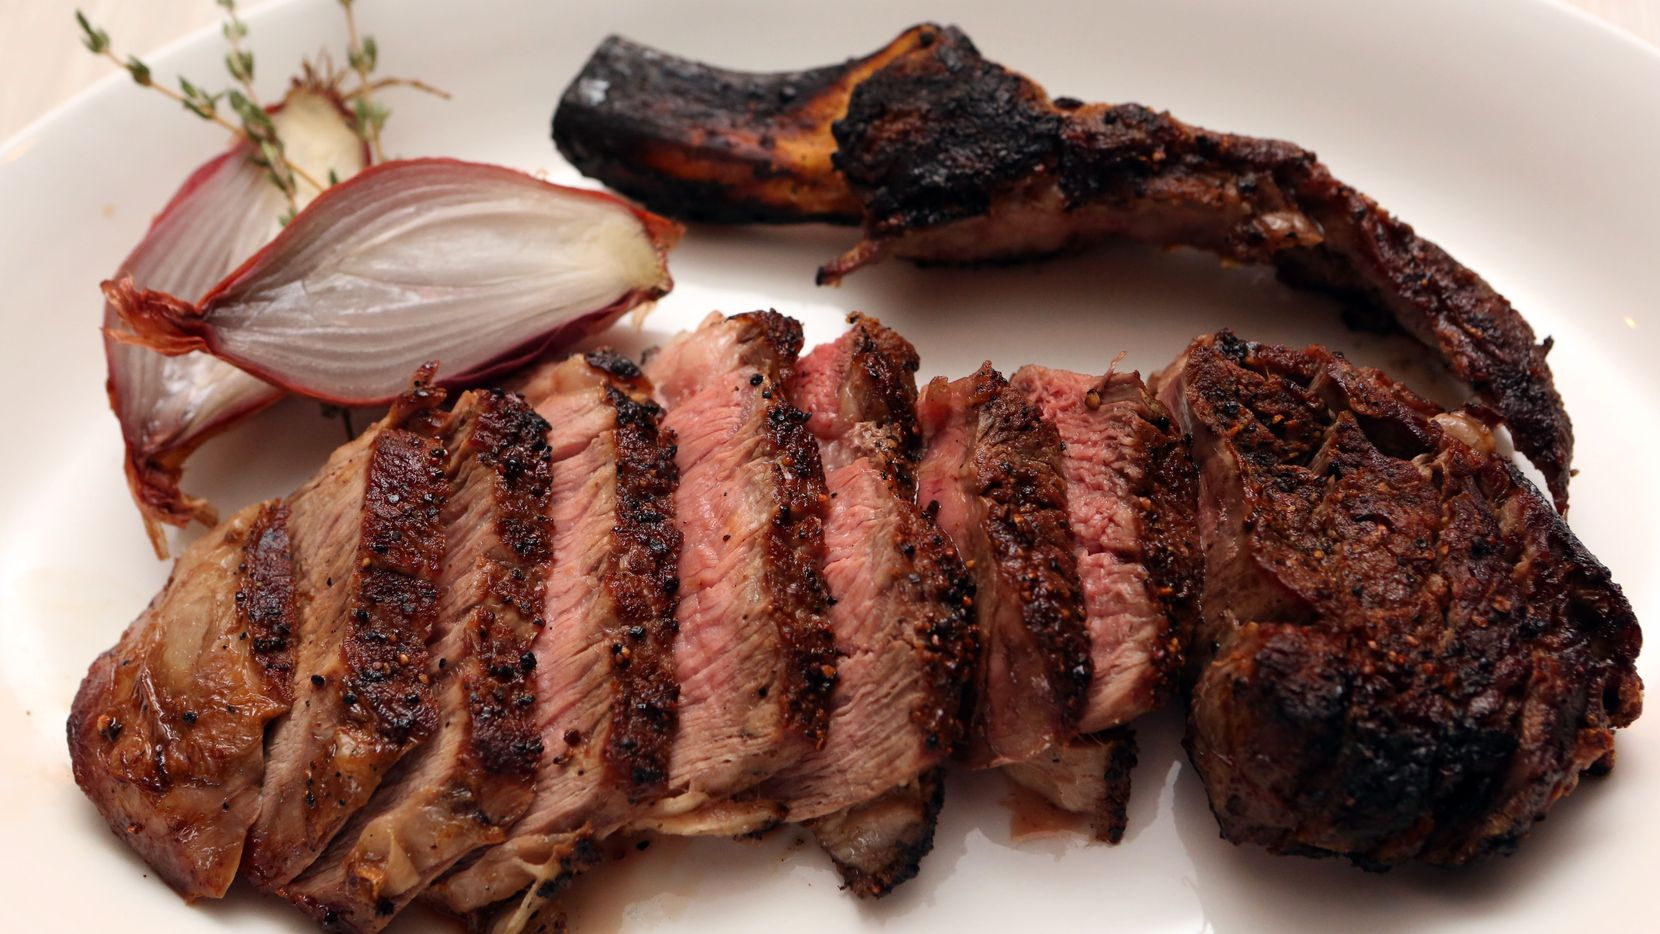 Knife's claim to fame is its dry-aged steaks. This one was aged for 28 days, but, for a much higher price, steaks can be aged for 150 days or more.